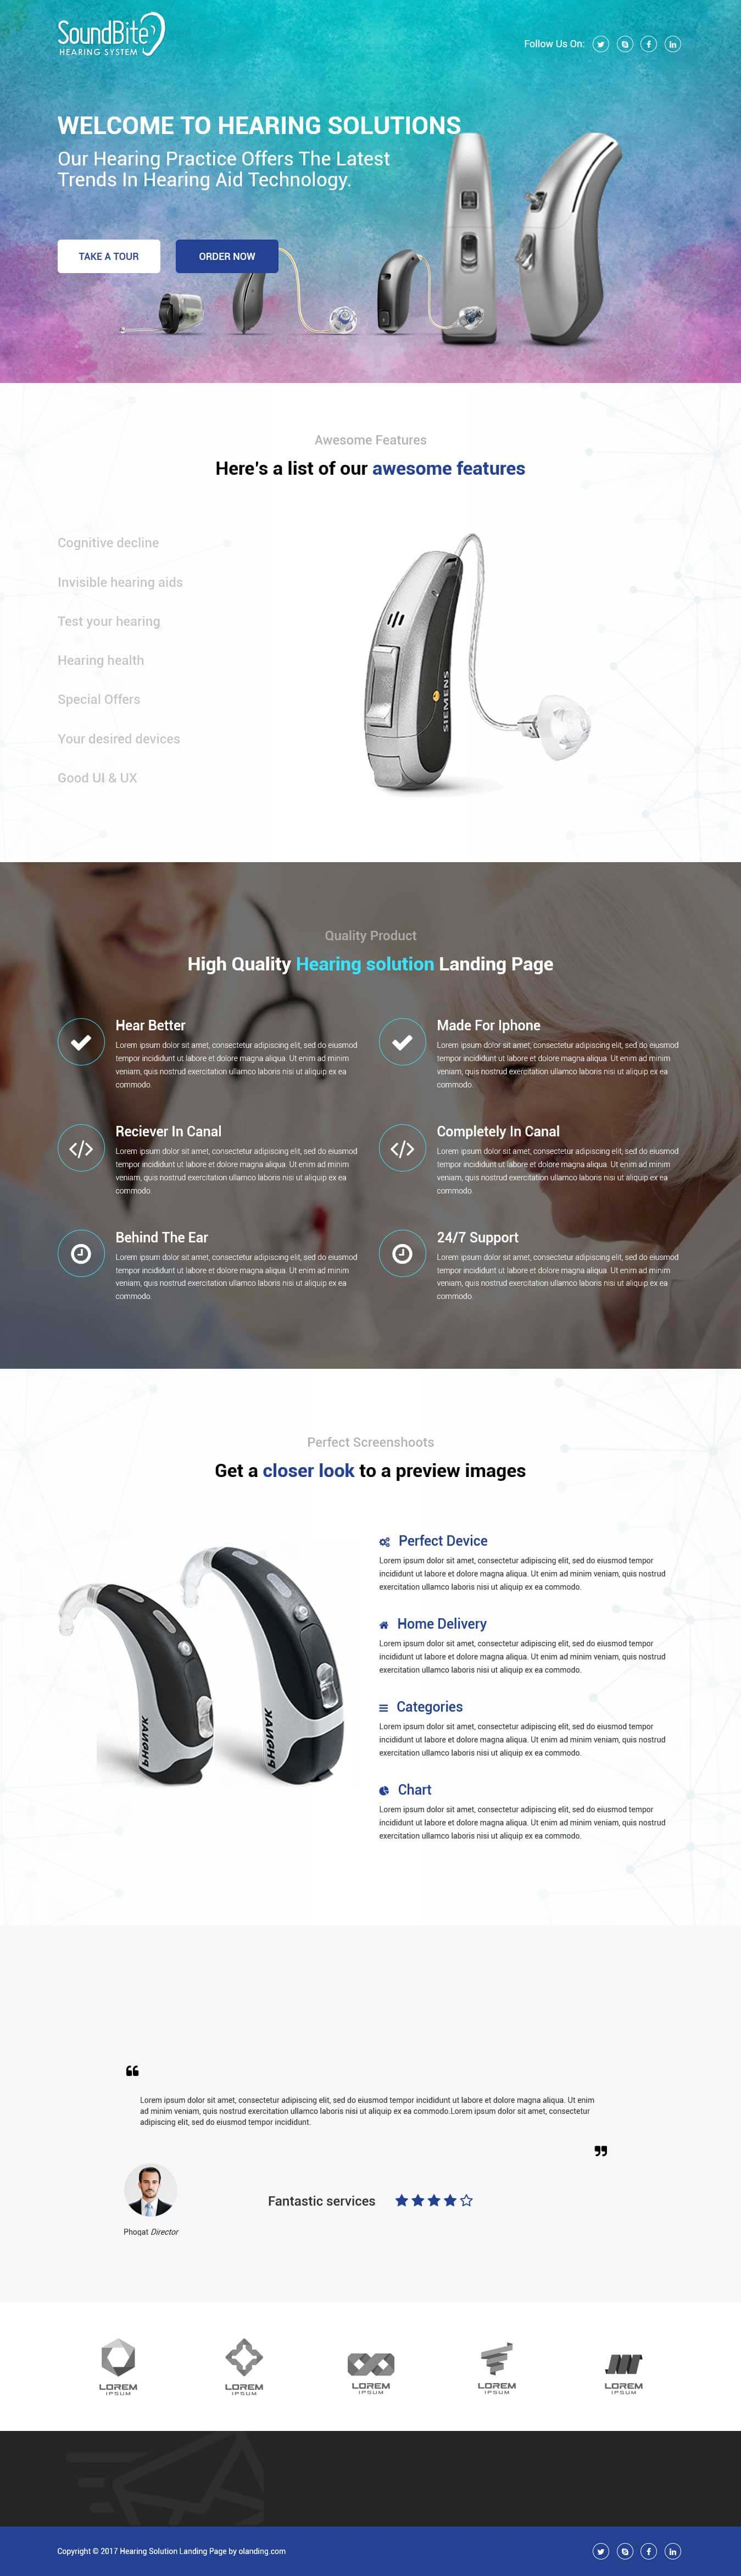 Hearing Solutions Landing Page